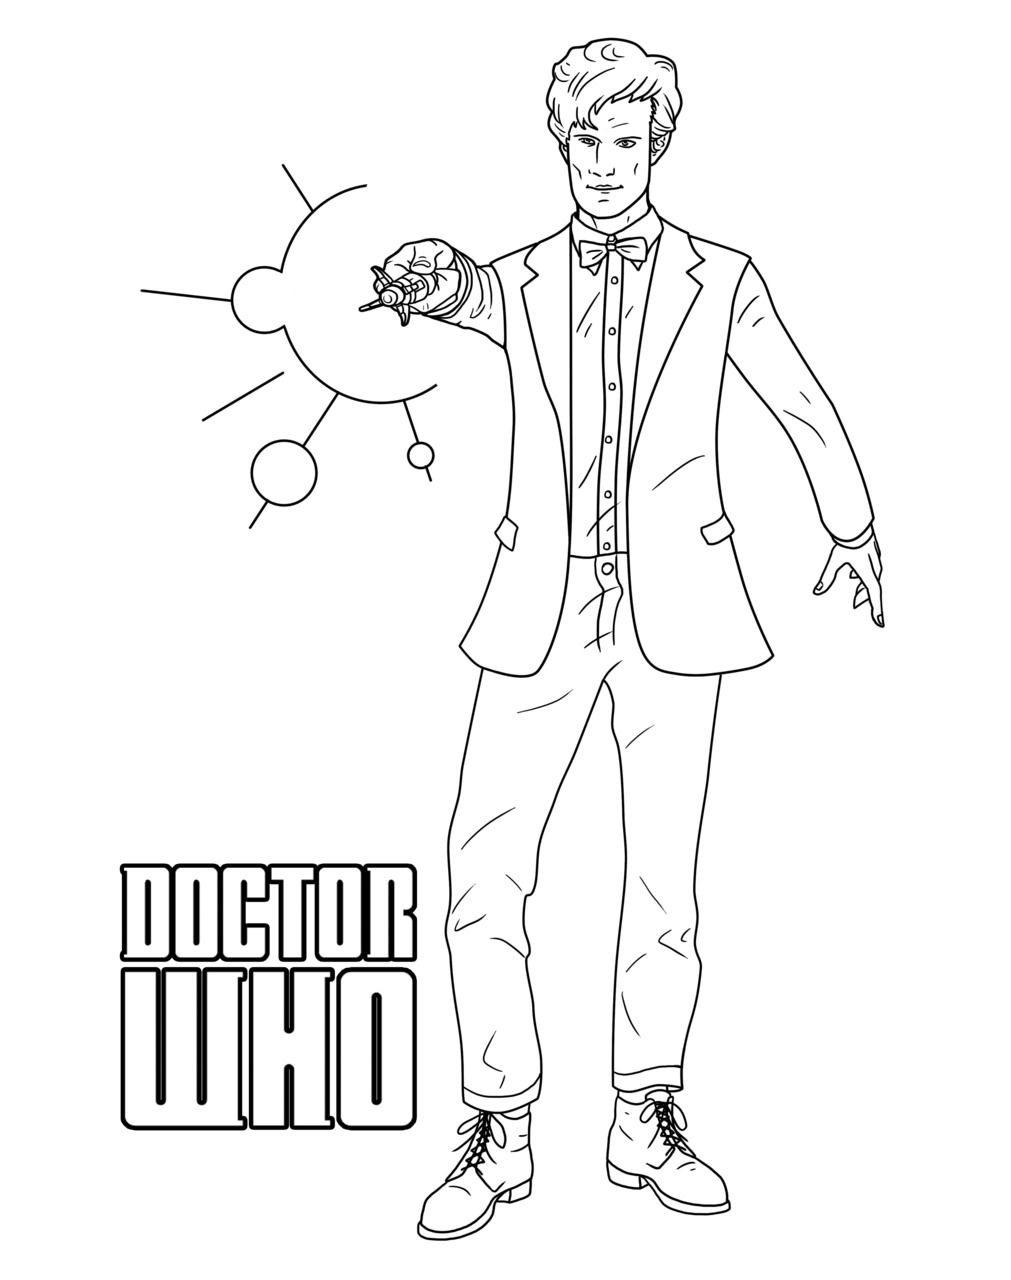 Coloring pages for doctors day - Doctor Who Coloring Pages Printable Coloring Pages Of Print Doctor Who The Doctor Pinterest Printing Tardis And Geek Stuff